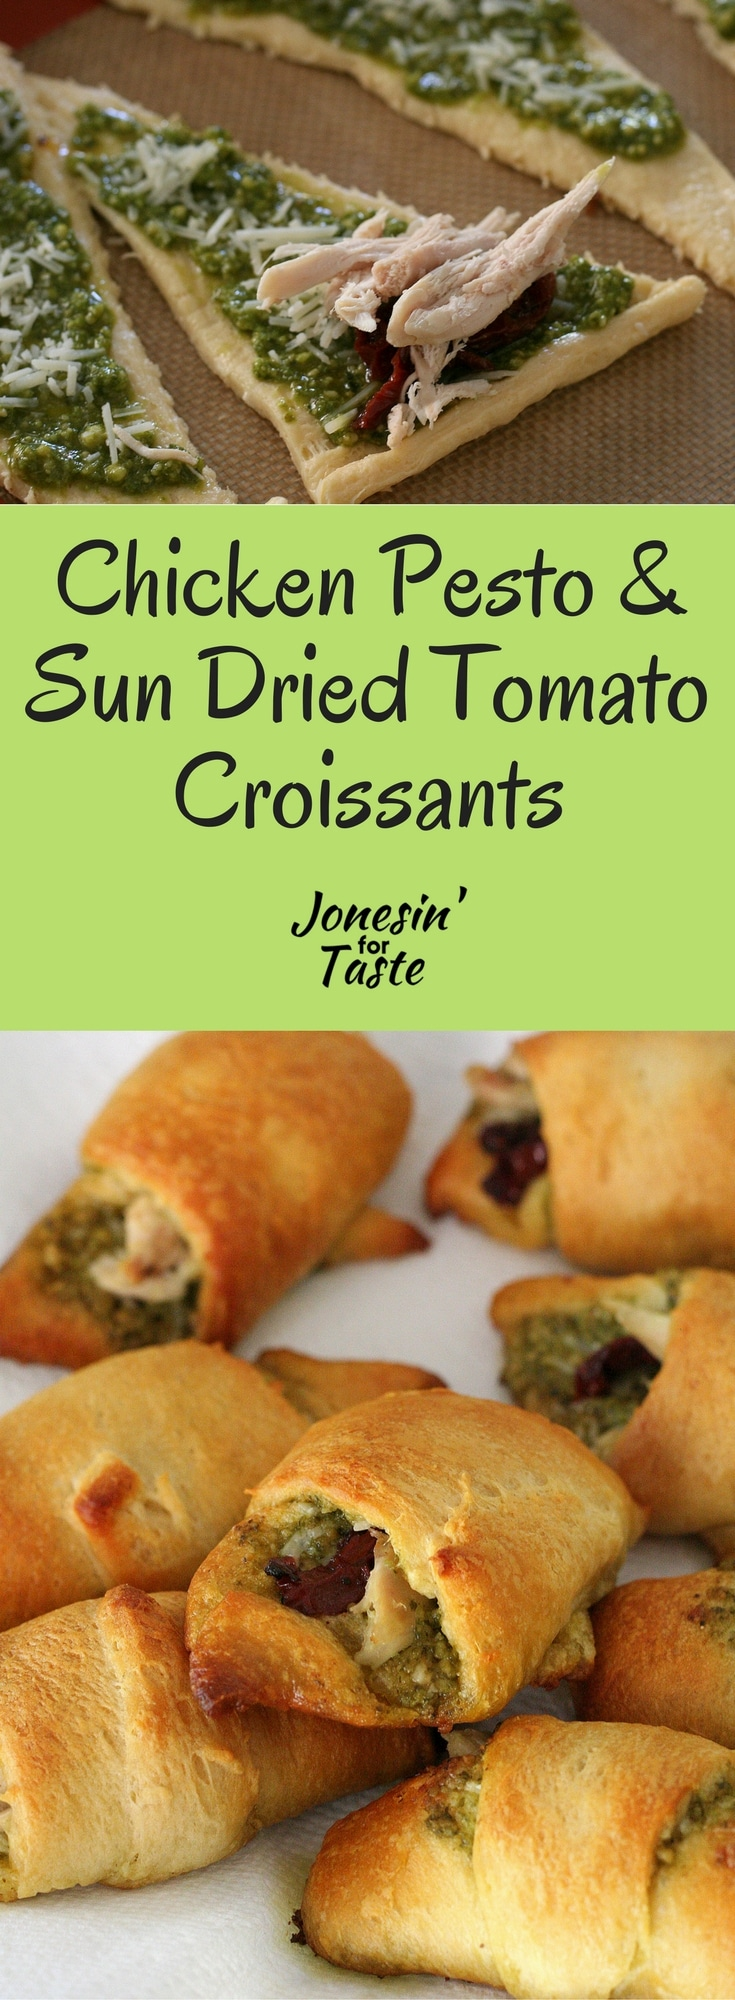 These easy chicken croissants with pesto and sun dried tomato are made with a few simple ingredients for a flavorful savory appetizer.